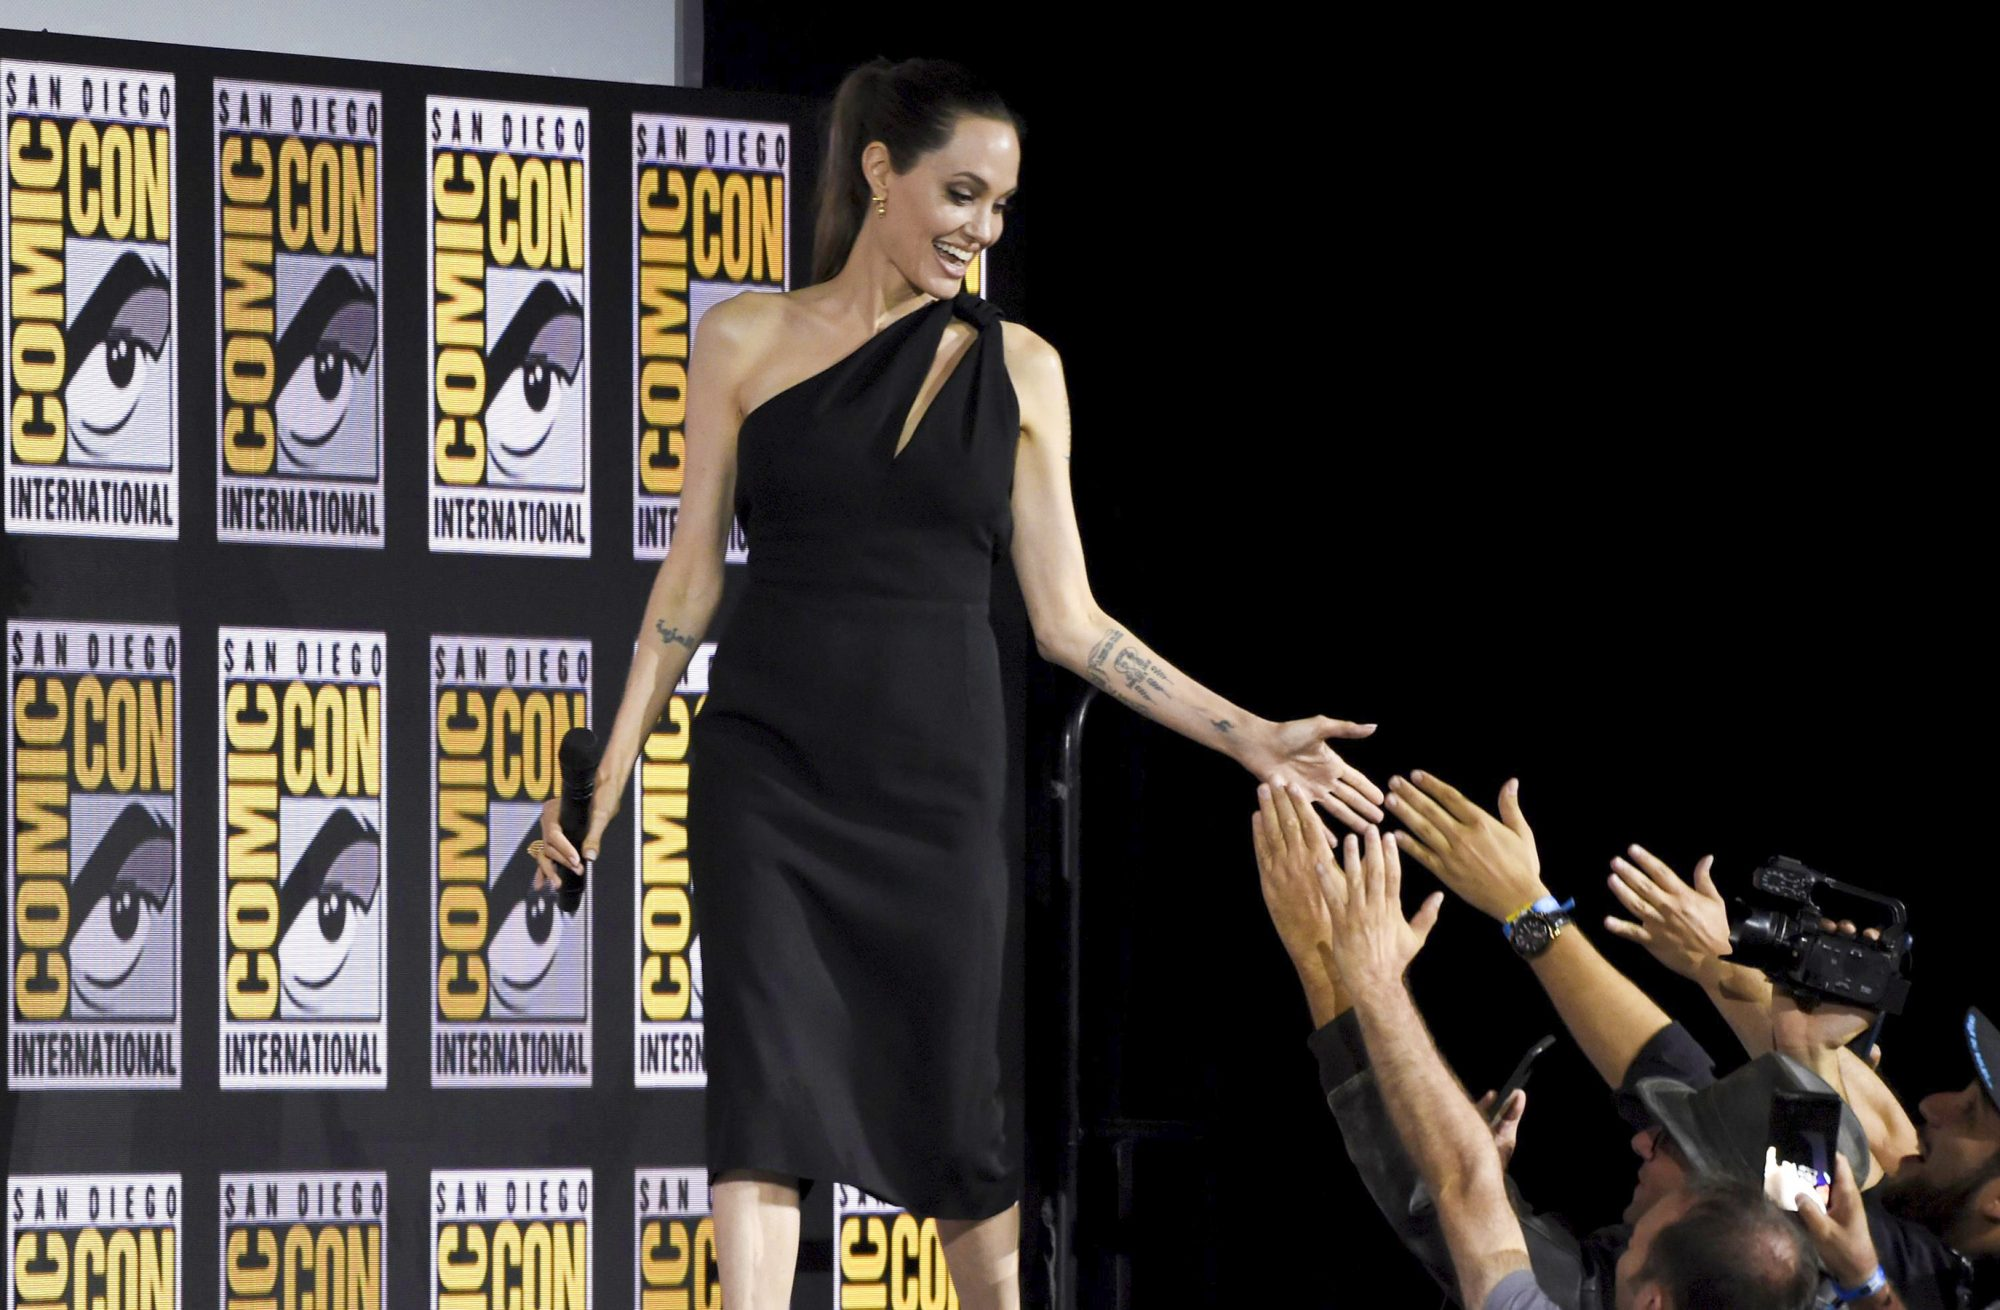 Mandatory Credit: Photo by Chris Pizzello/Invision/AP/Shutterstock (10342690a) Angelina Jolie greets fans as she walks on stage at the Marvel Studios panel on day three of Comic-Con International, in San Diego 2019 Comic-Con - Marvel Studios, San Diego, USA - 20 Jul 2019